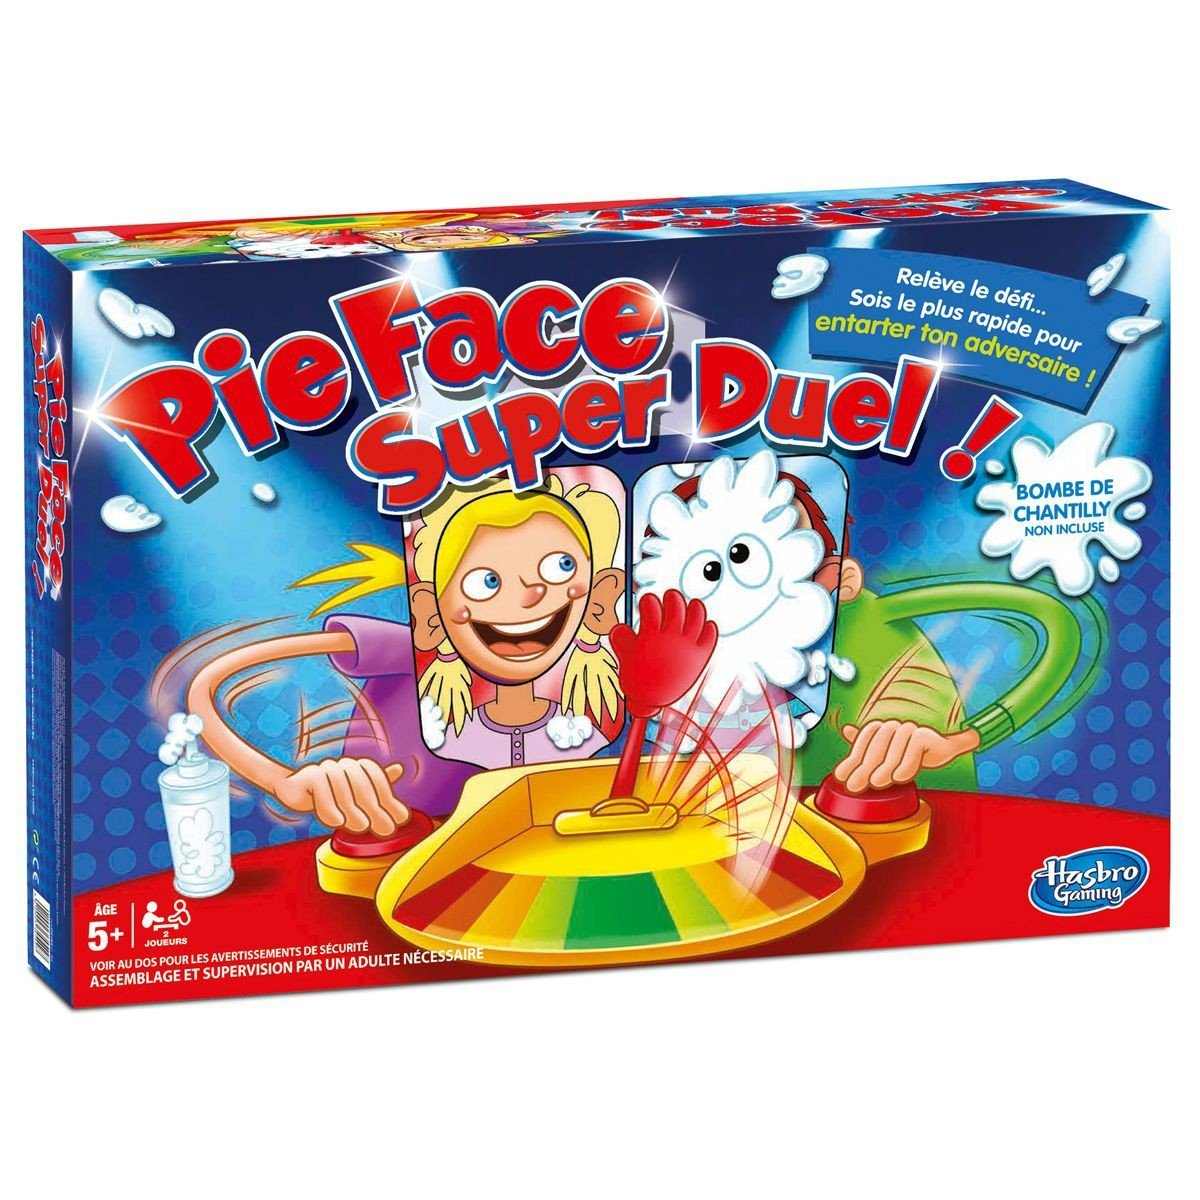 Hasbro - Pie Face Super Duel - Le Jeu de la Chantilly, Jeu pas cher Amazon